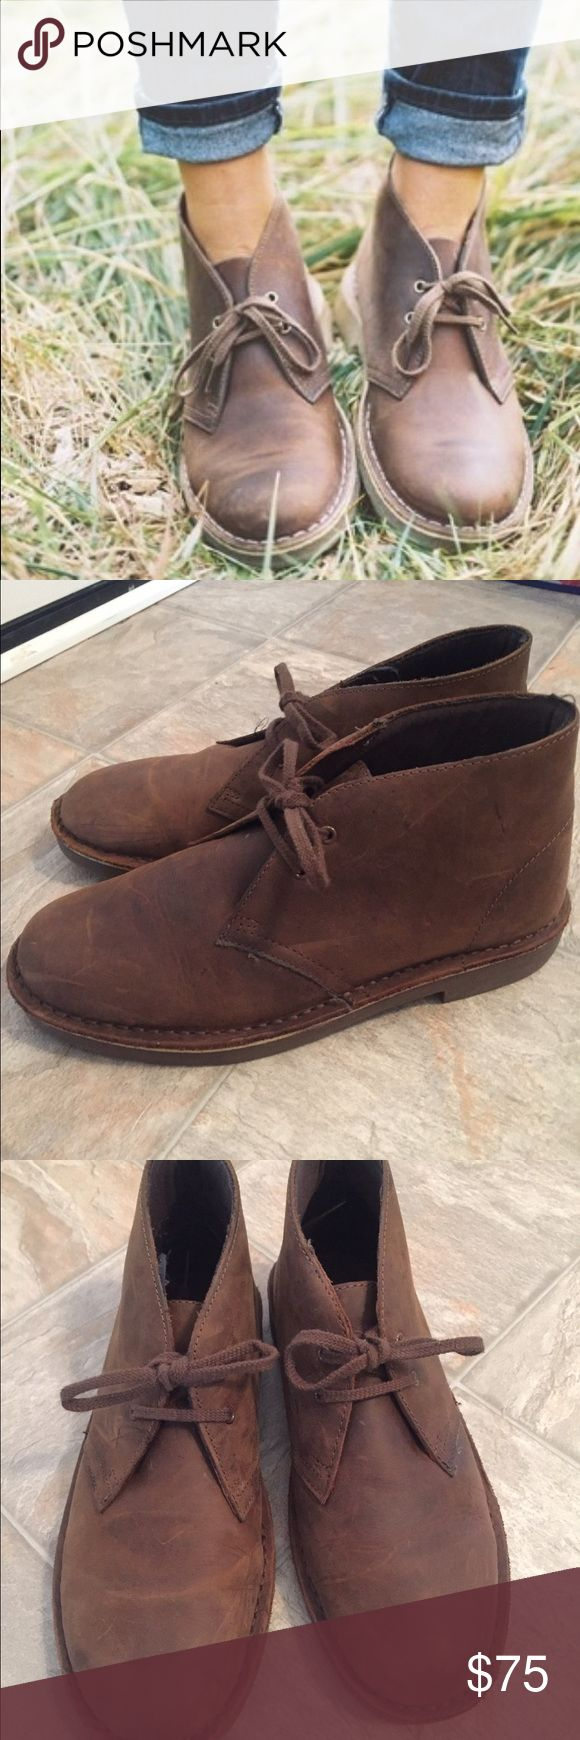 Clark's Desert Boots Women Size 9 These are Clark's Desert Boots for women and they are size 9. I wear a 9 1/2 normally but they still fit well. They're basically brand new and have only been lightly worn. They're super cute to wear with skinny jeans or leggings or however you like! Definitely a cool hipster vibe. Clarks Shoes Ankle Boots & Booties